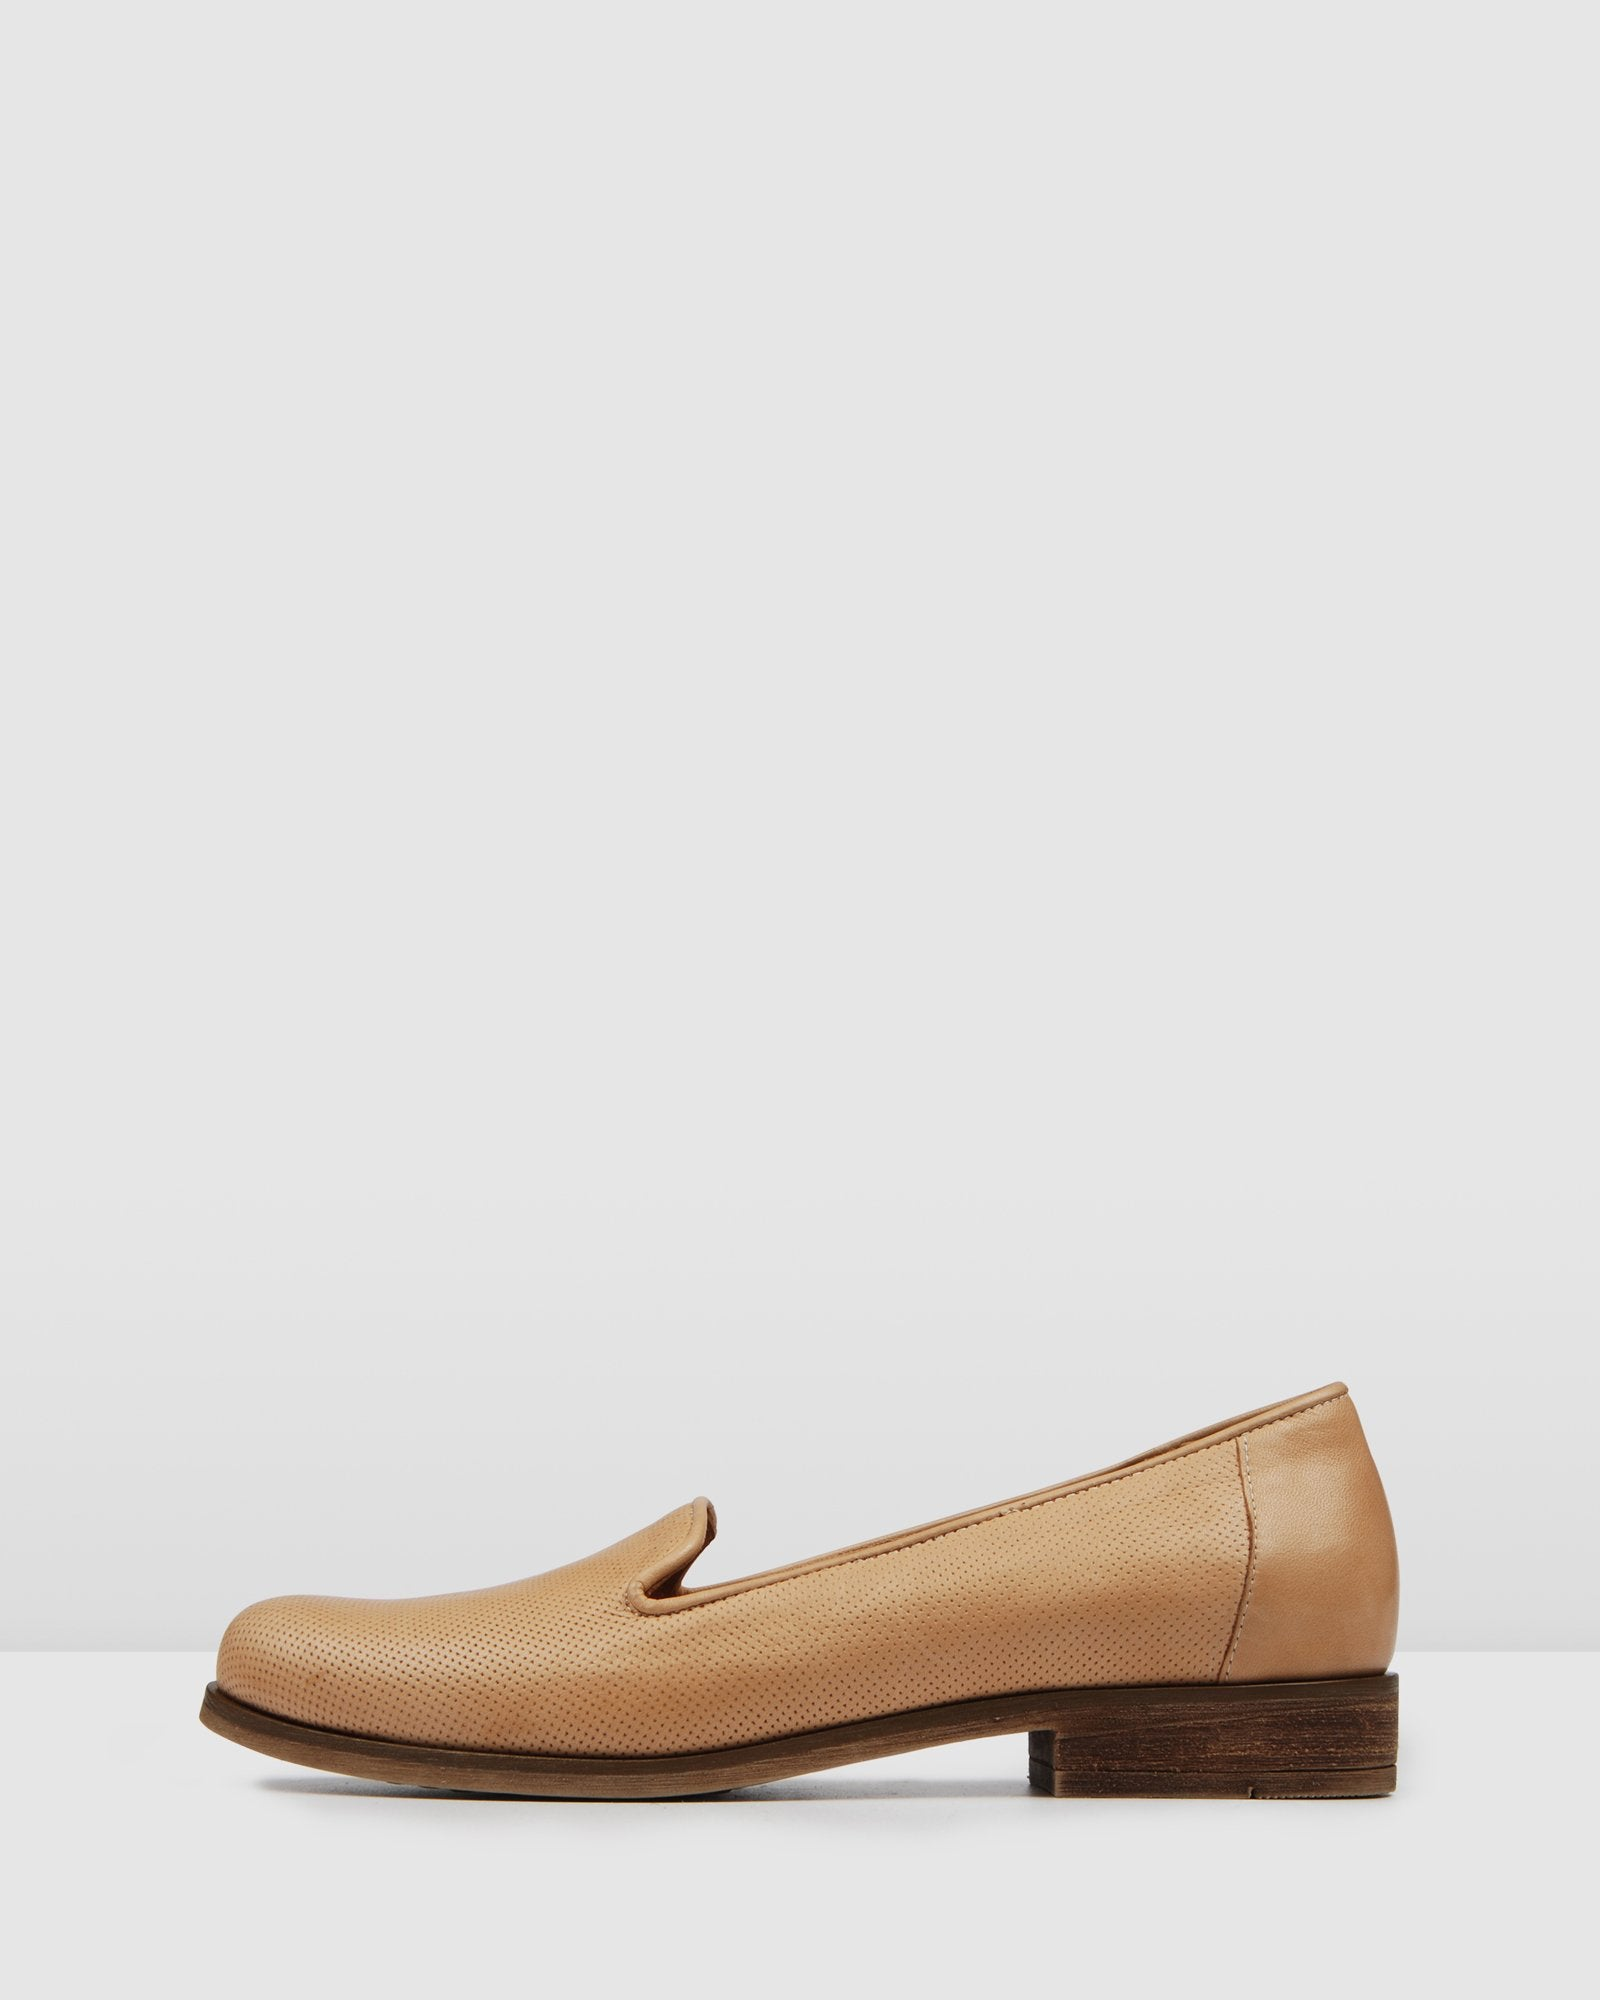 HOLT LOAFERS NATURAL LEATHER